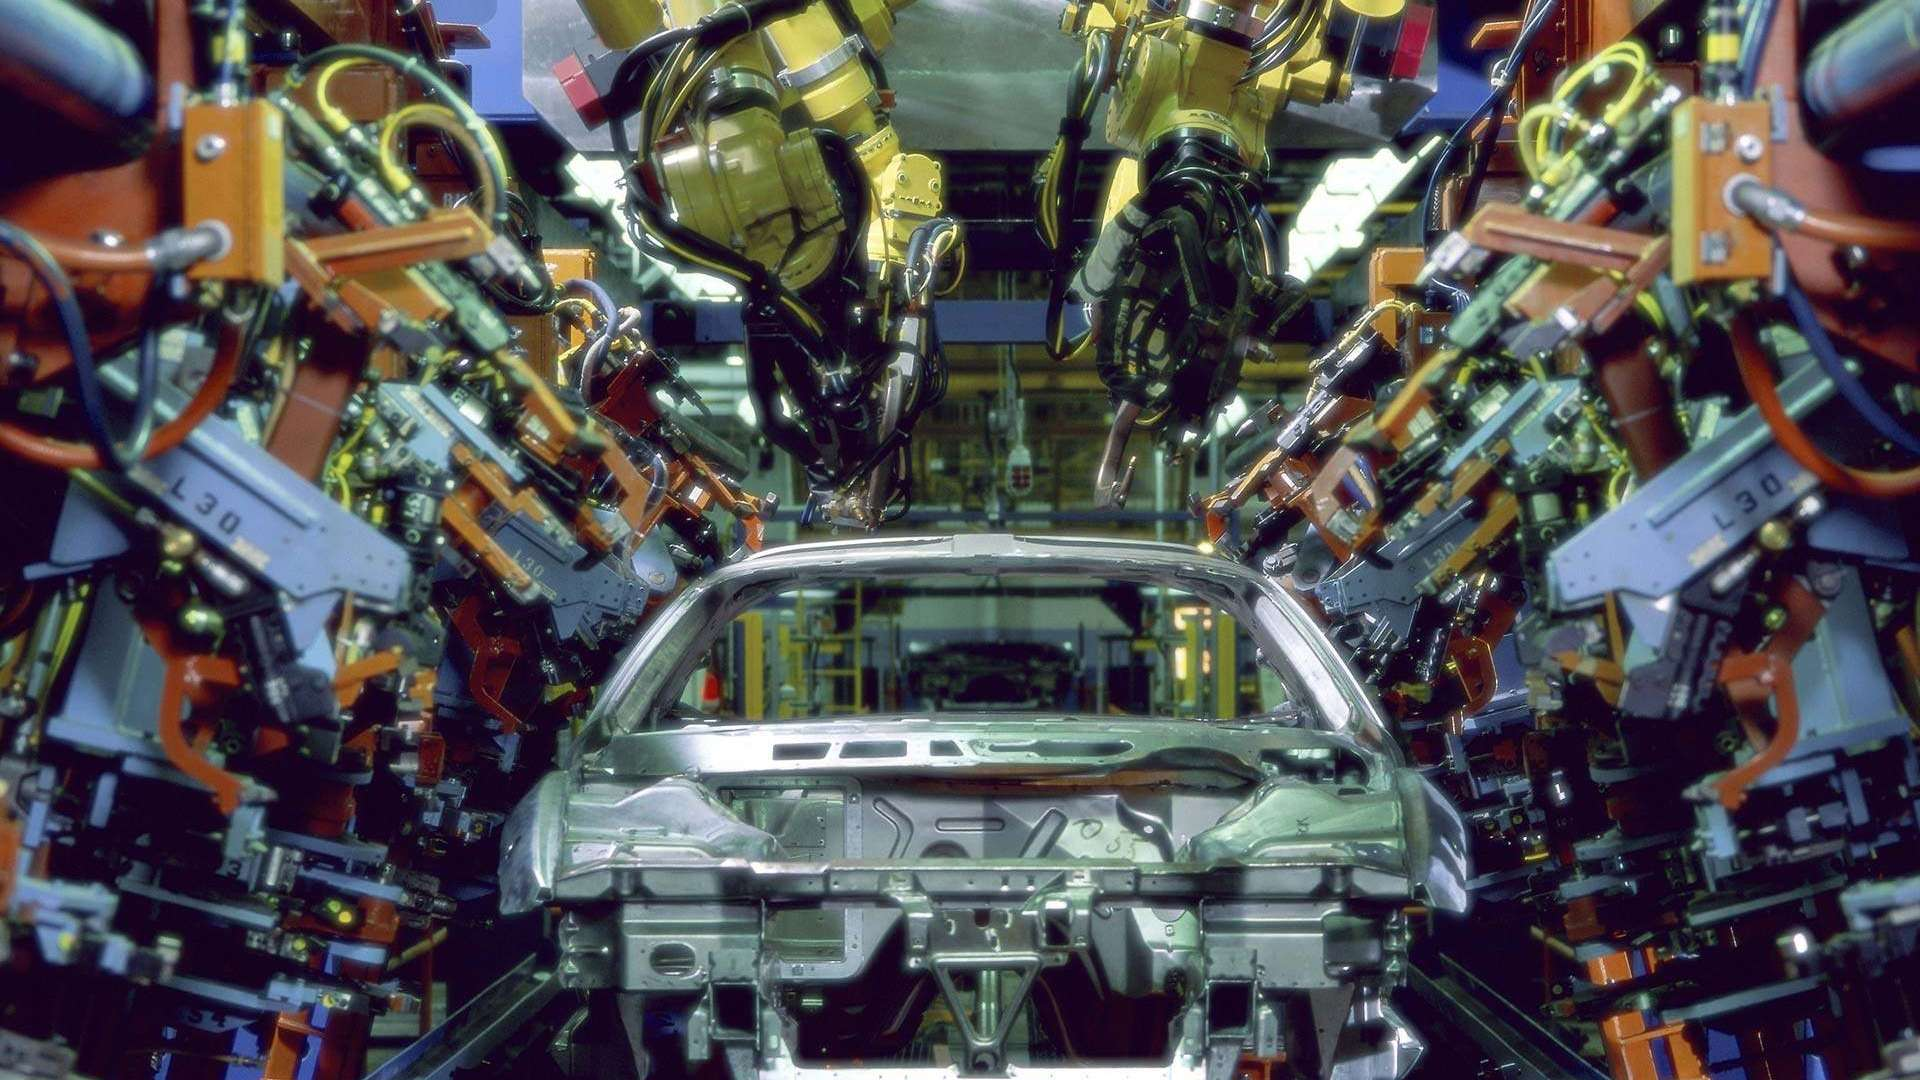 Auto manufacturers already take full advantage of the Product as Service model